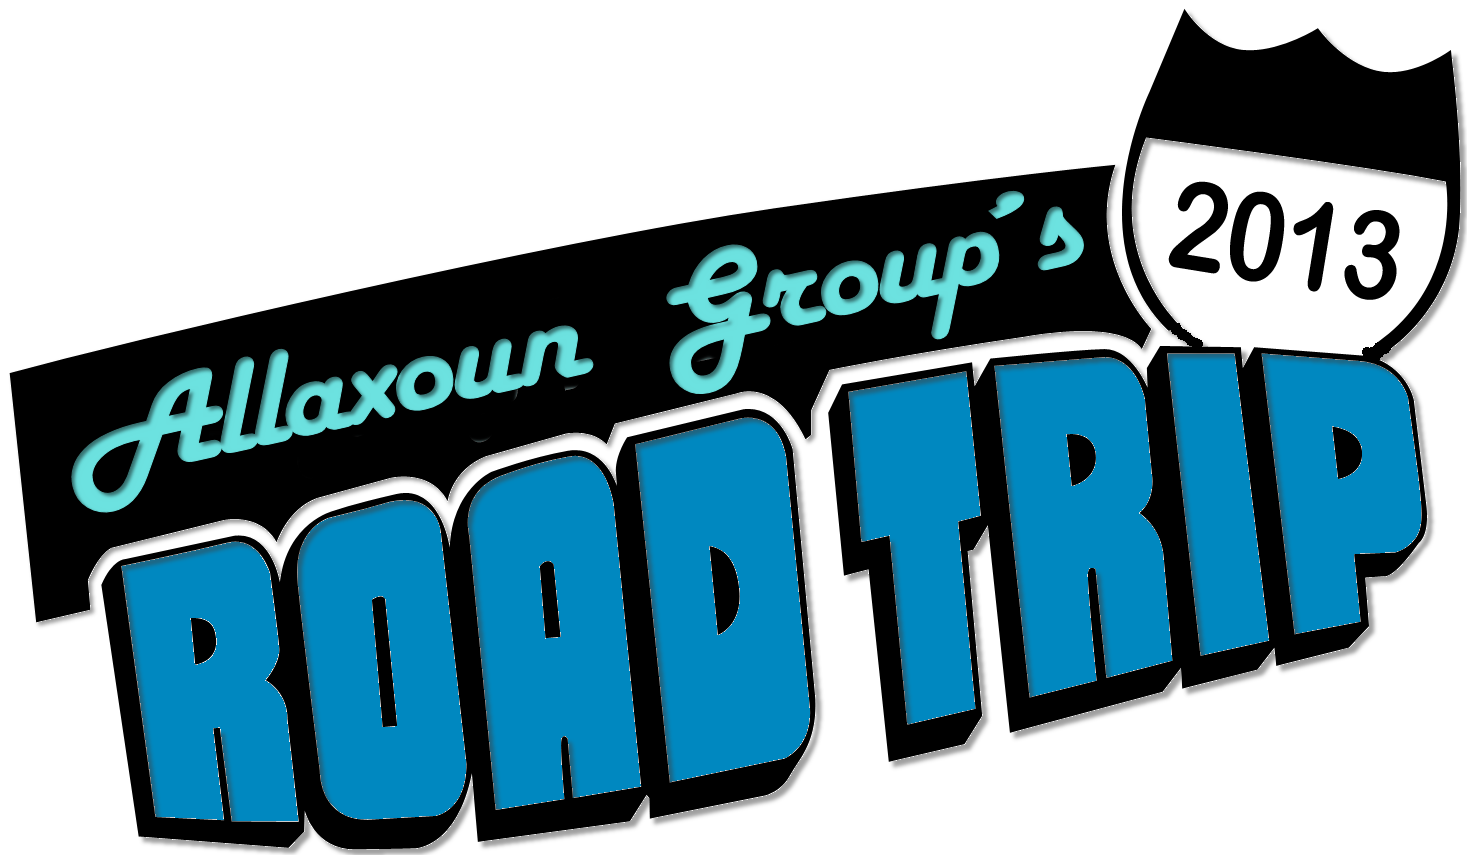 Banner clipart travel. Free road trip download